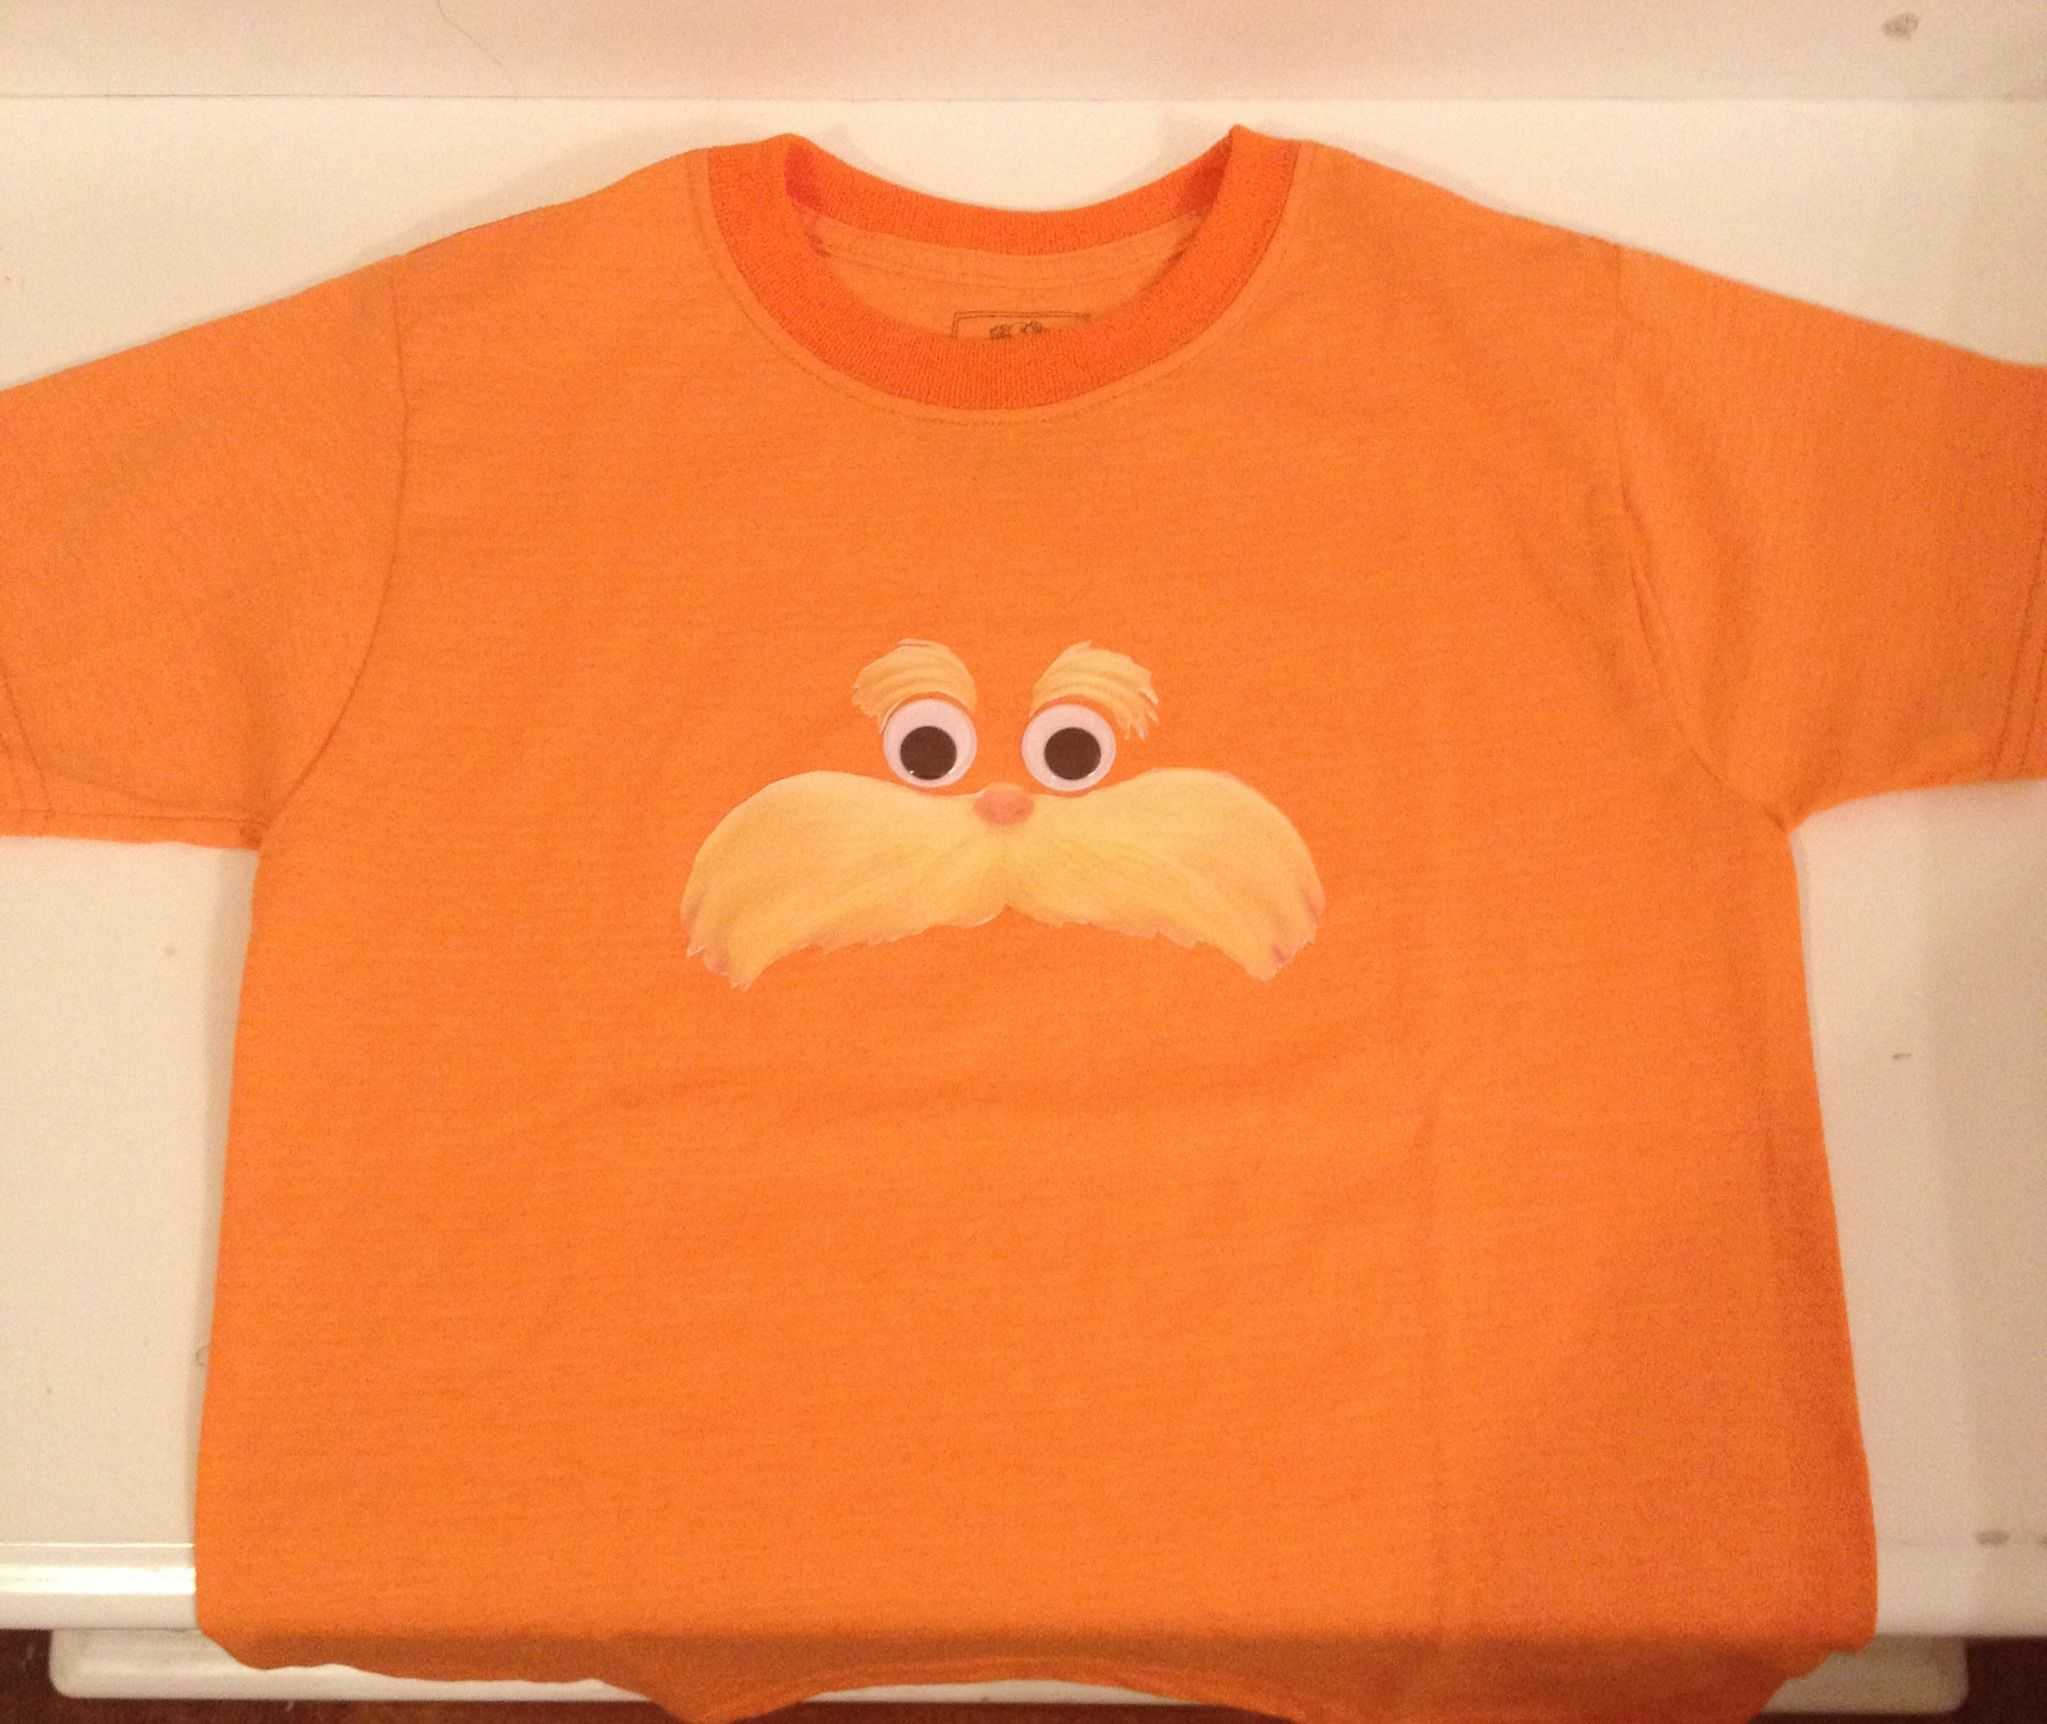 Lorax Tshirt For Dr Seuss Day Only 3 At Walmart Then Printed Out Andrew Smith Floral Shirt Navy Xxl The Mustache